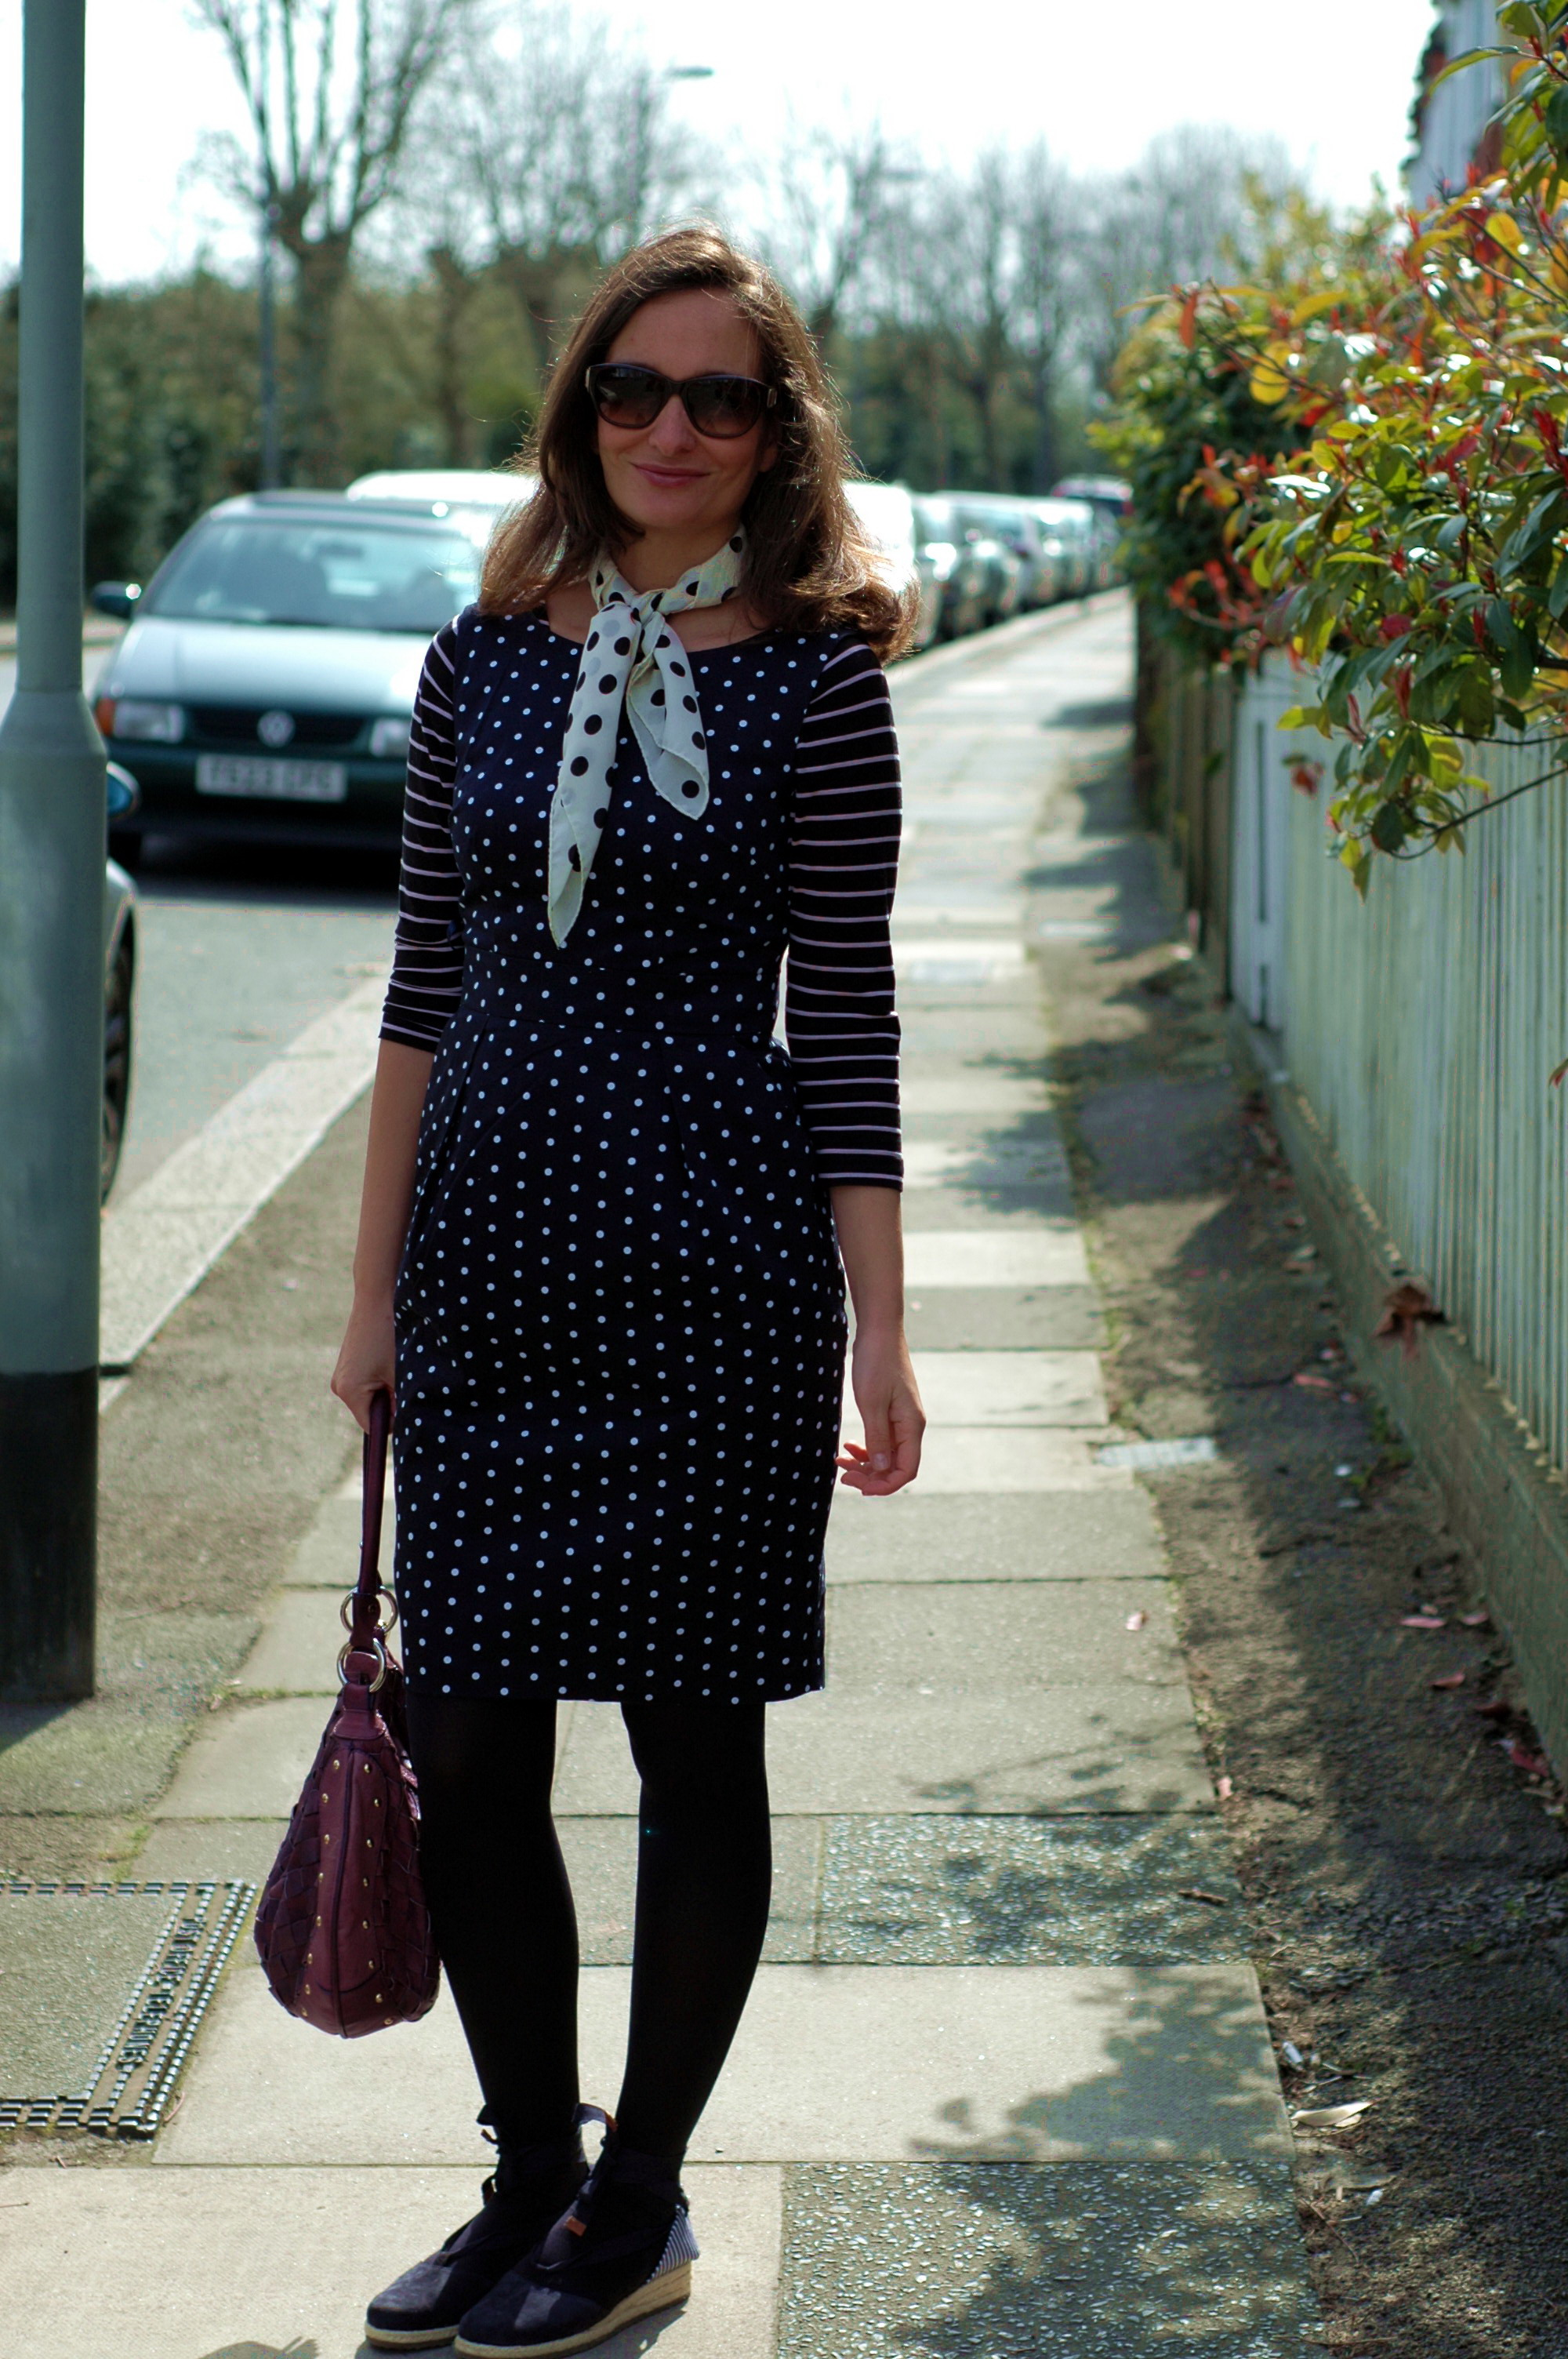 Polka dot dress Romantique